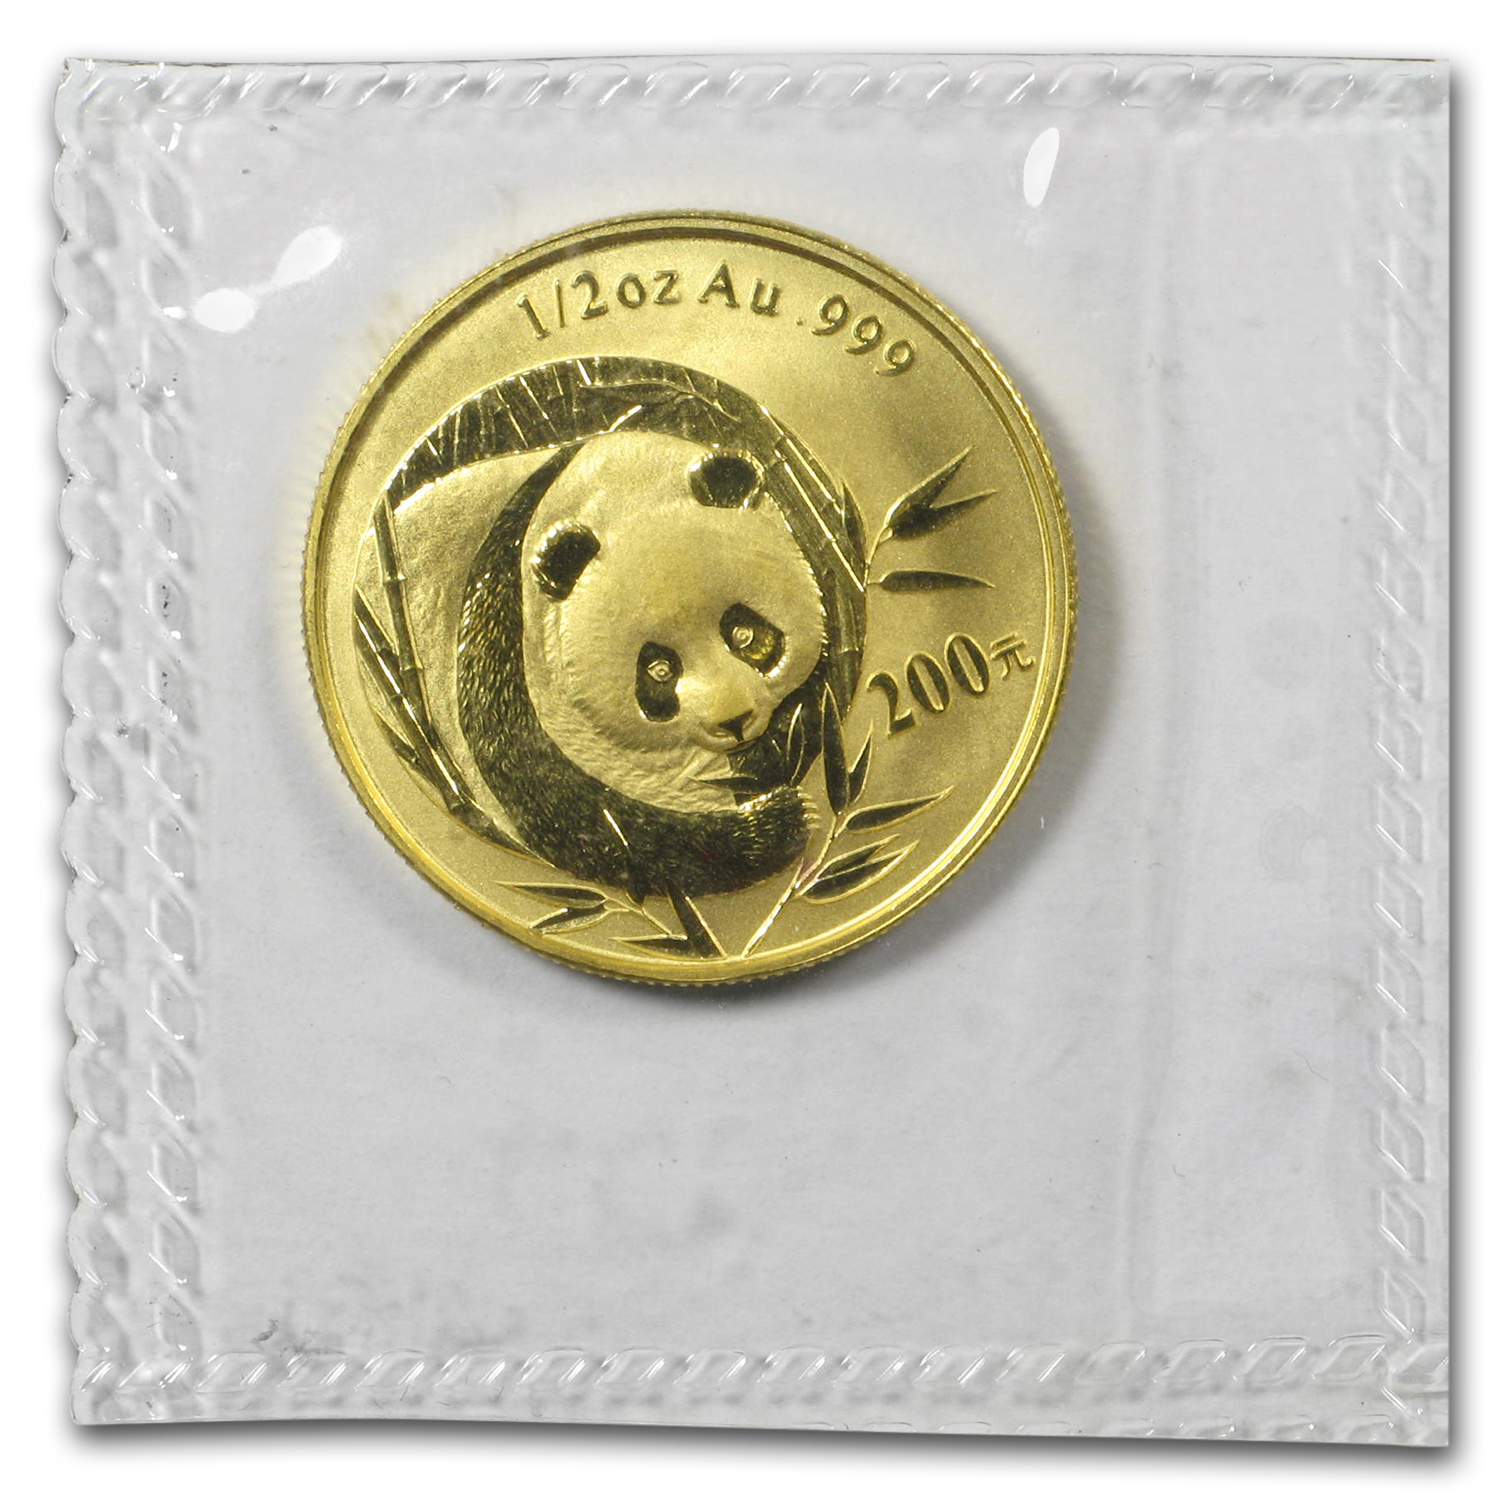 2003 1/2 oz Gold Chinese Panda BU (Sealed)